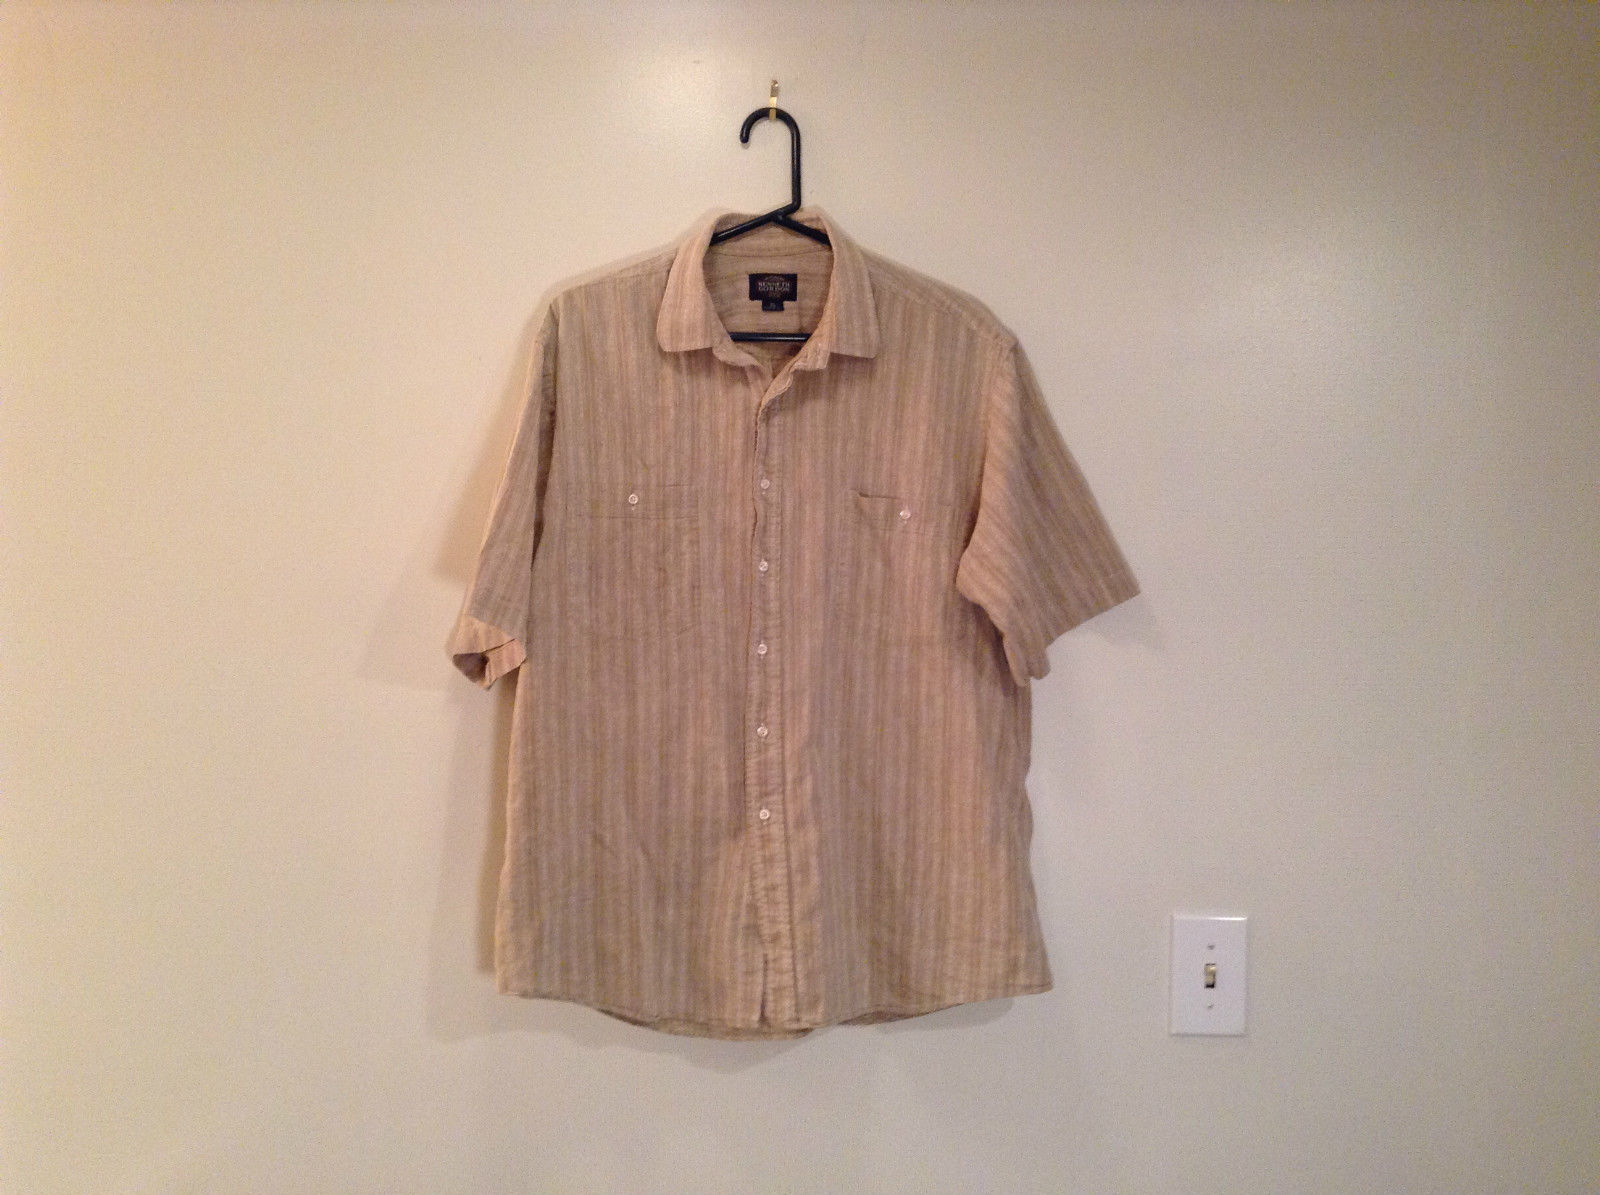 Kenneth Gordon Size XL Short Sleeve Tan Beige with Light Striped Pattern Shirt